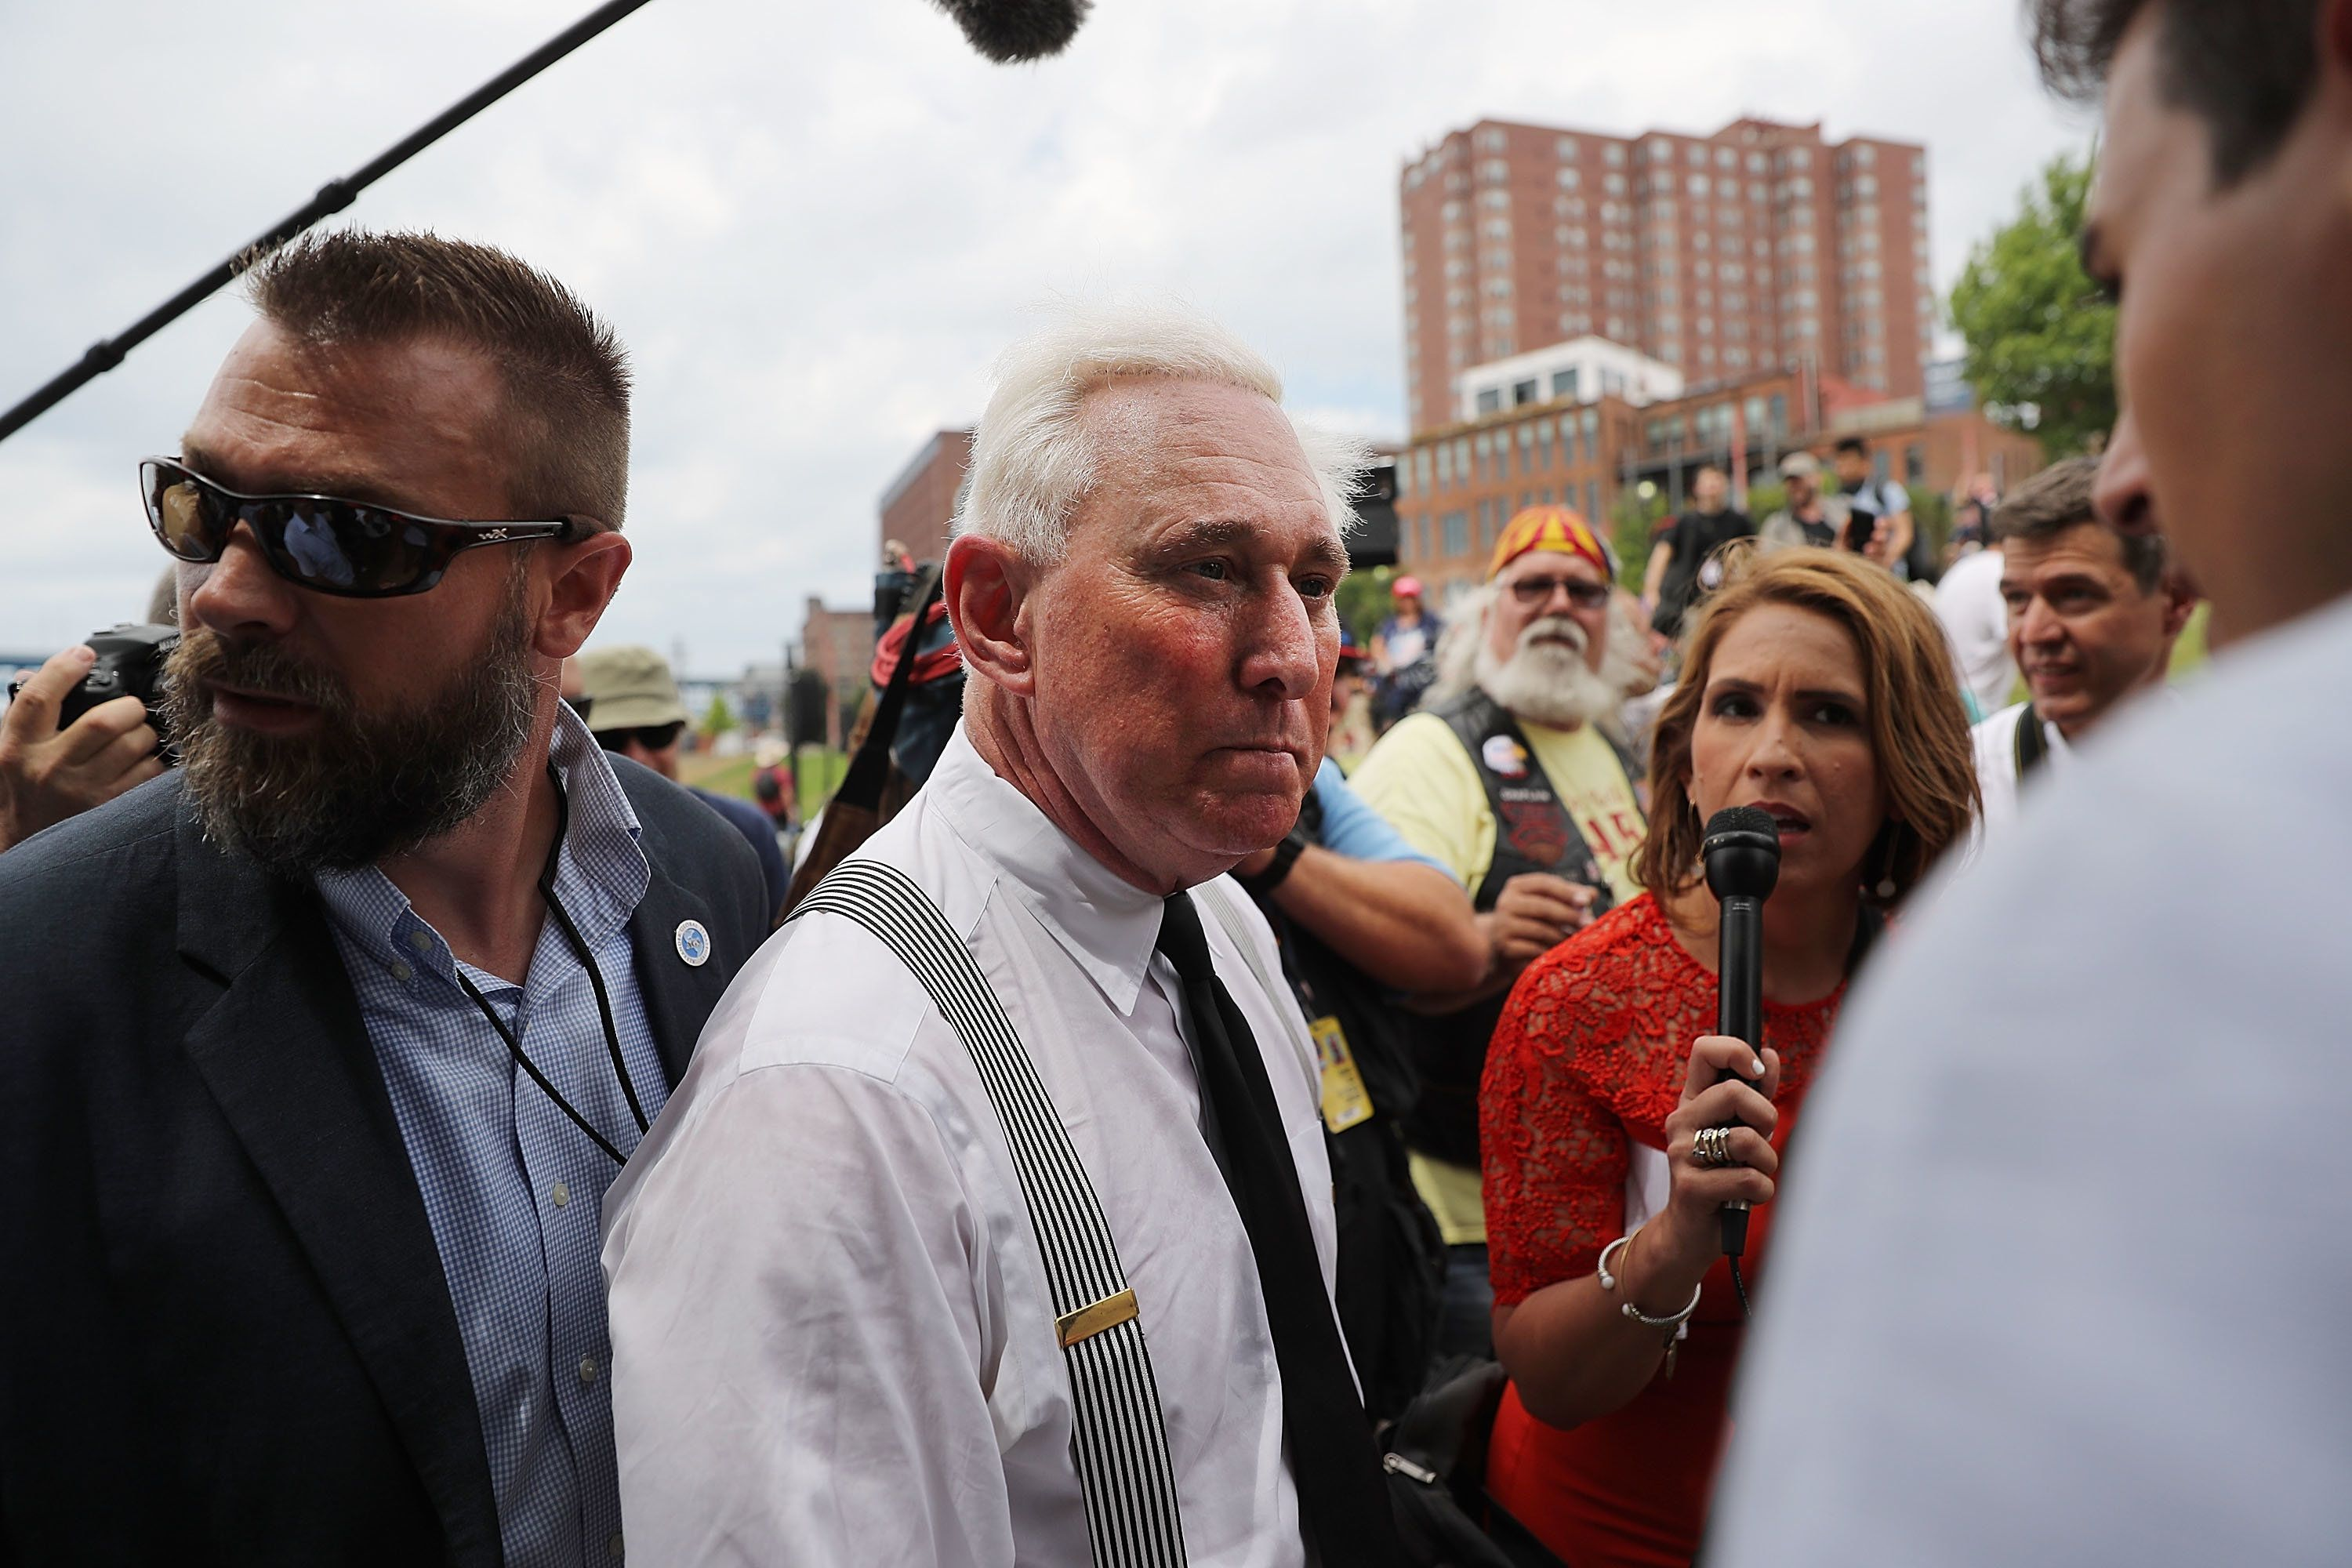 Trump adviser Roger Stone charged in Mueller inquiry